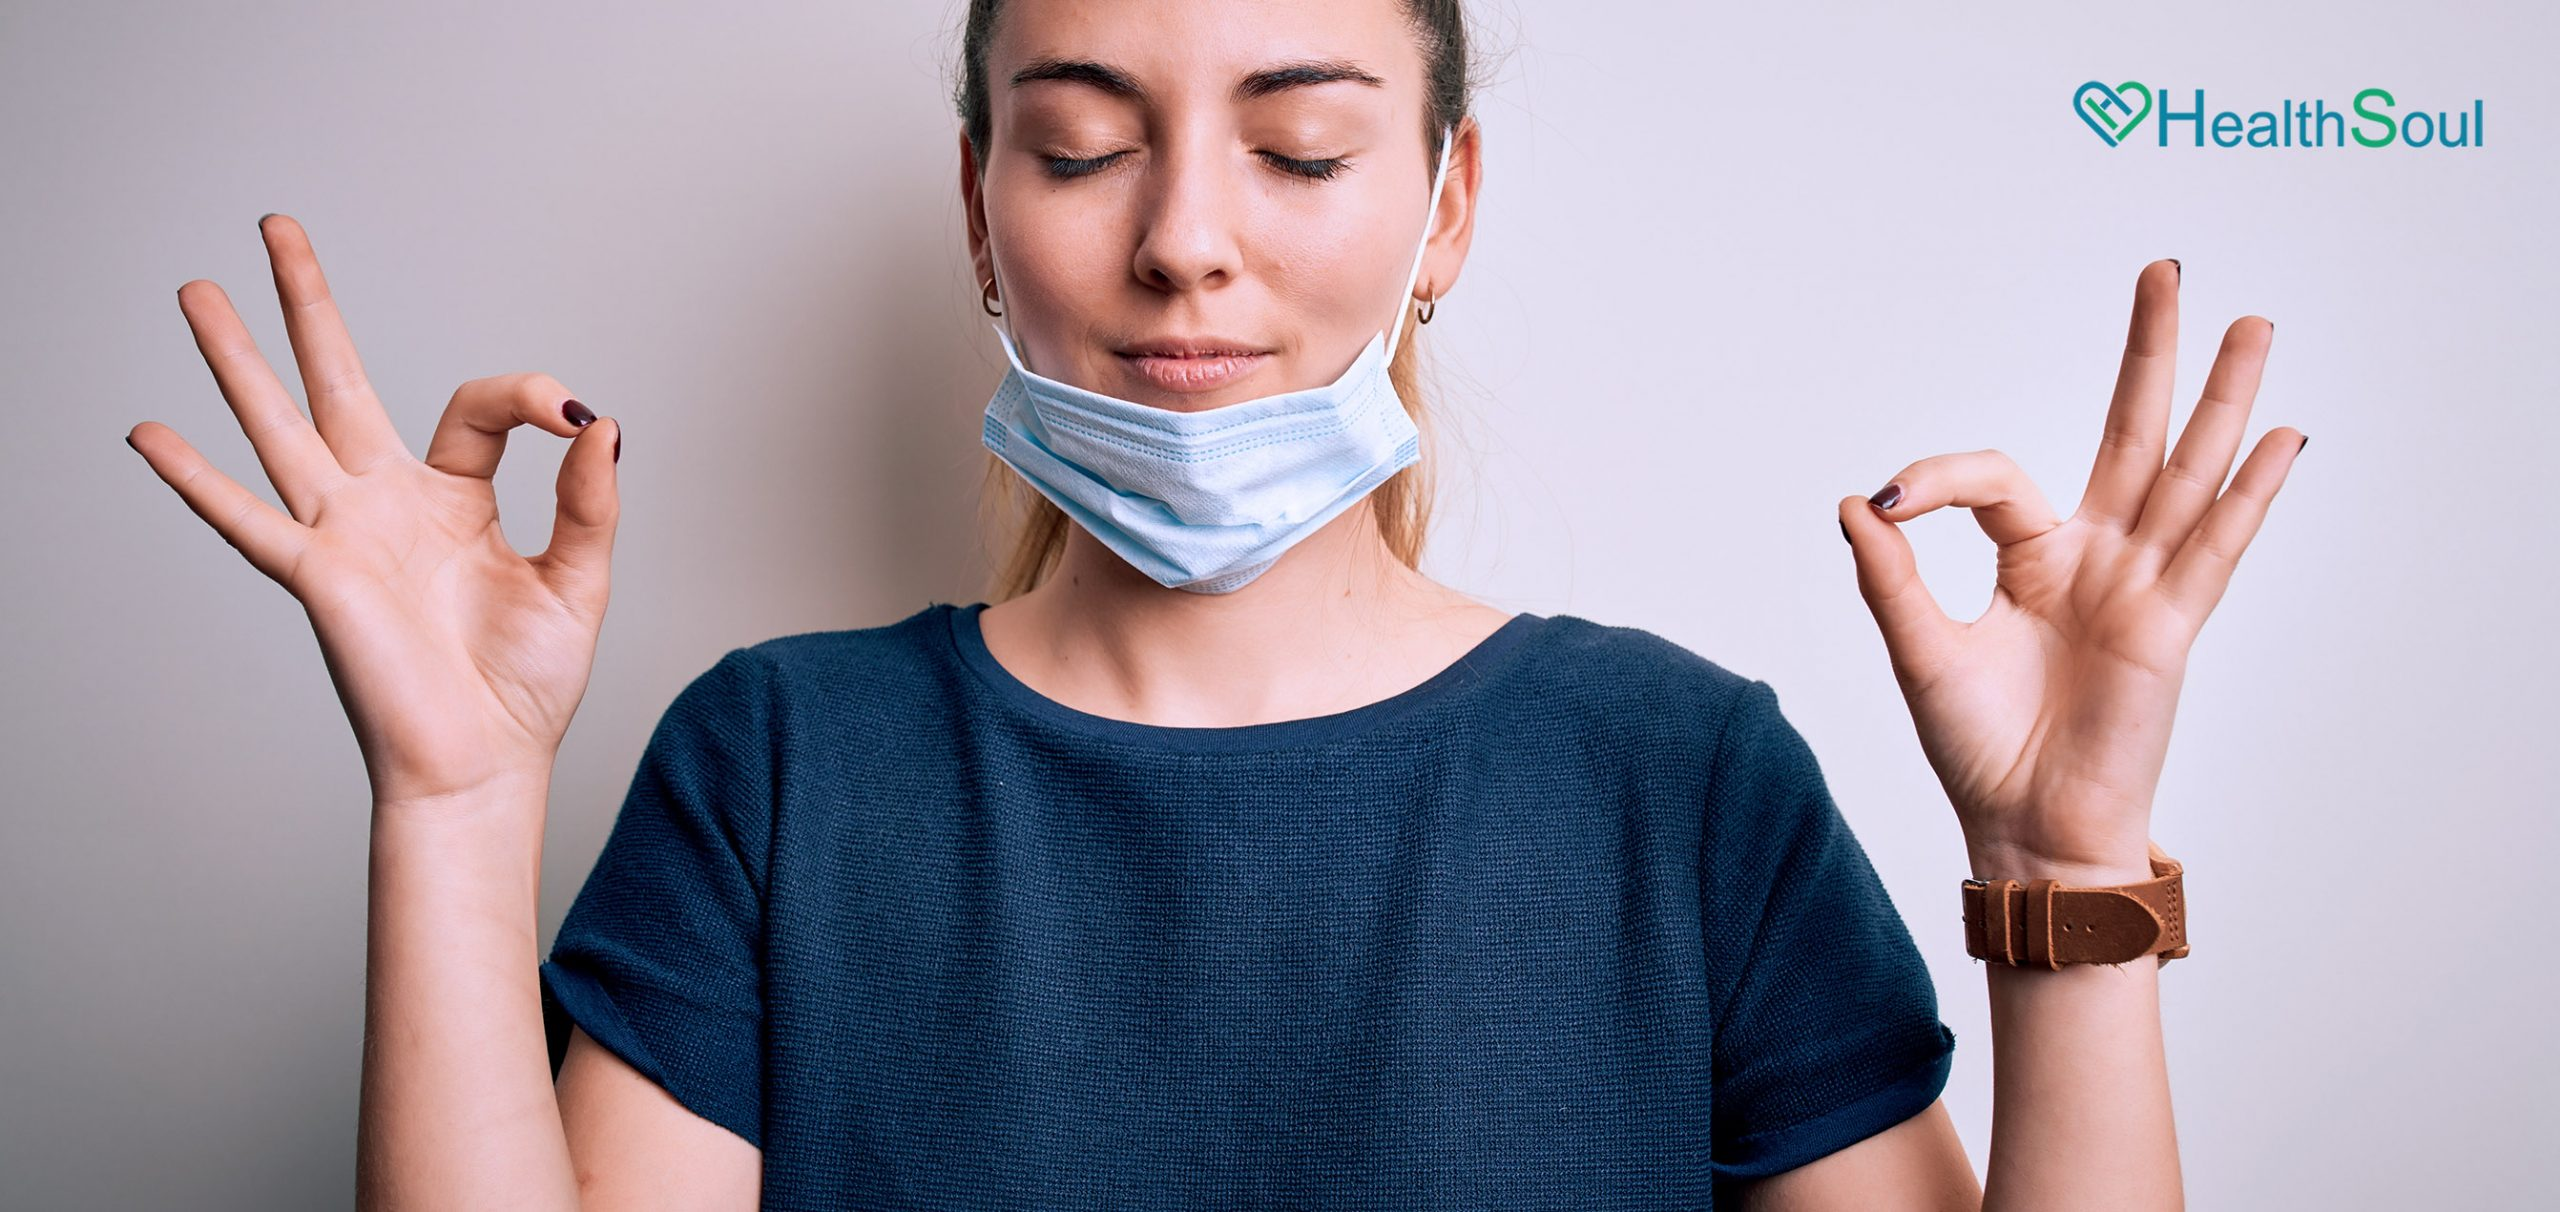 5 Tips for Managing your Mental Health during the Pandemic | HealthSoul